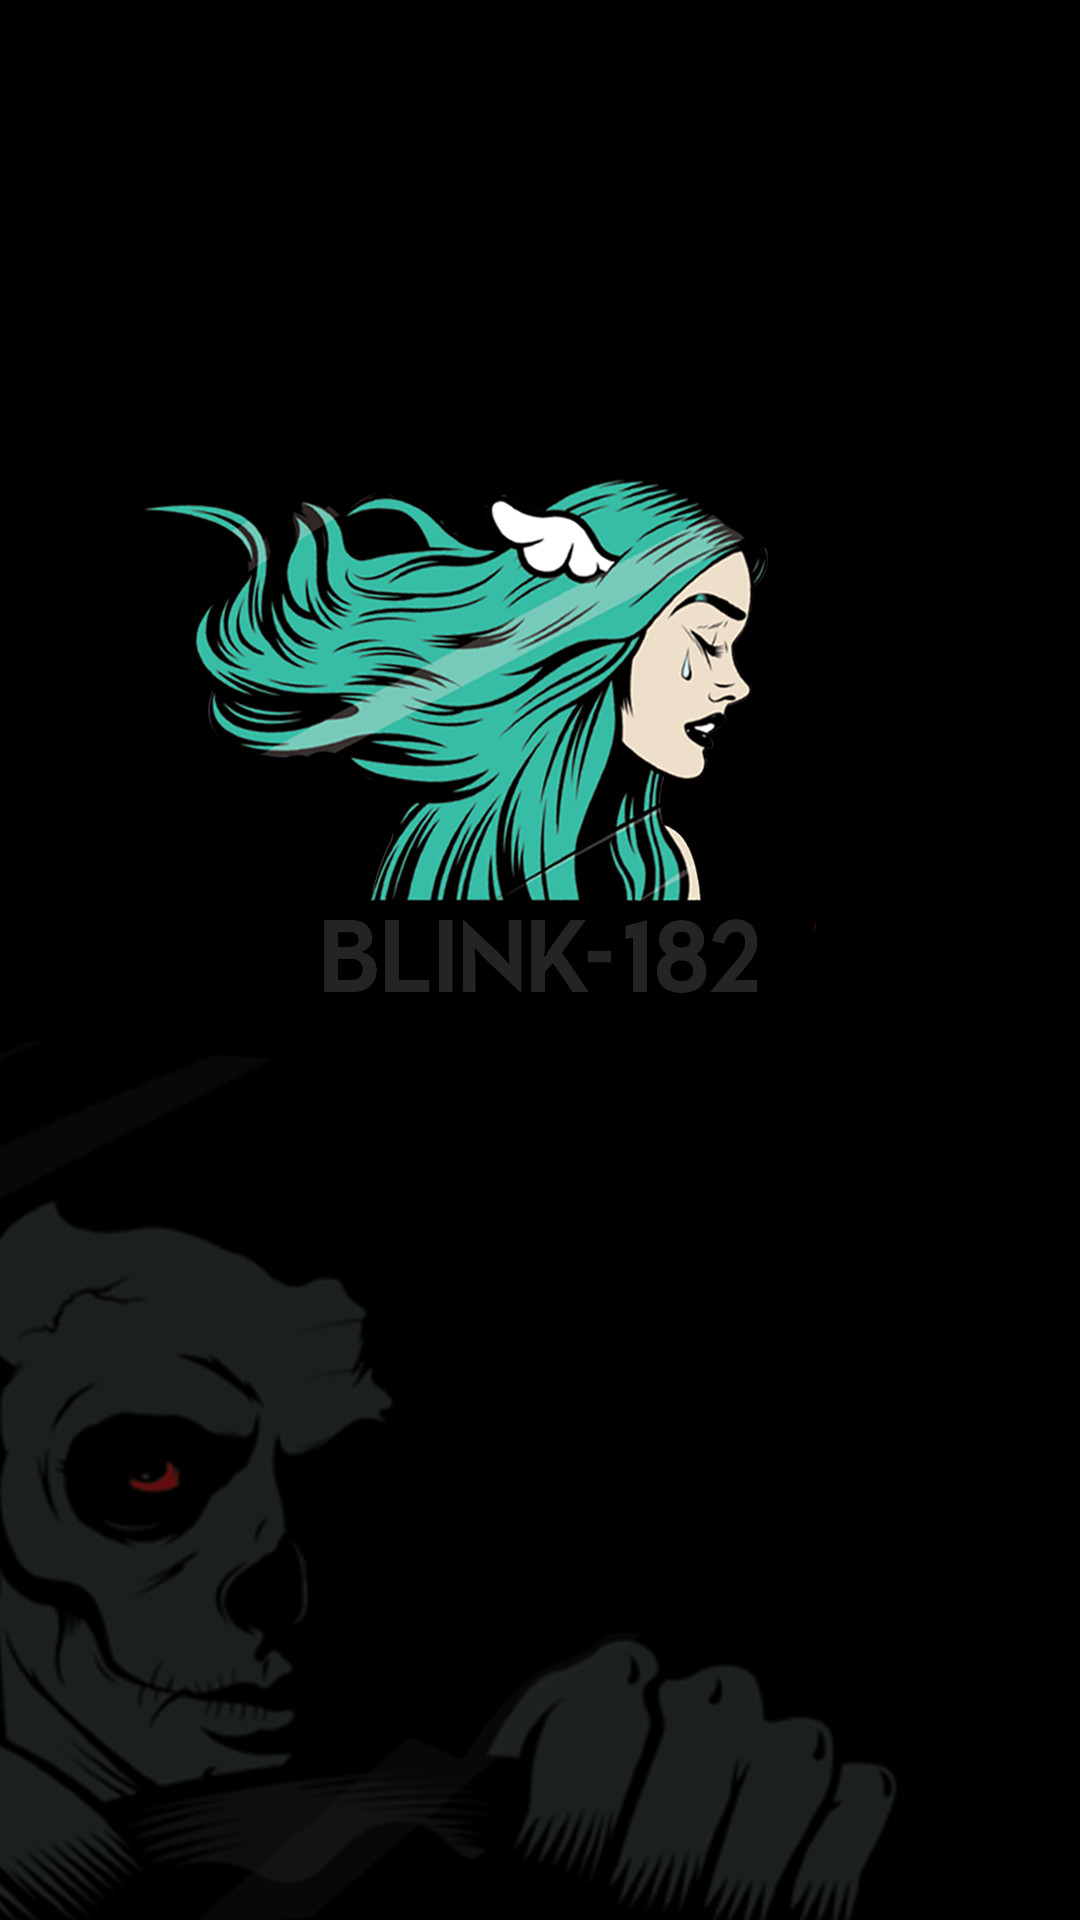 Blink 182 Background 58 pictures 1080x1920